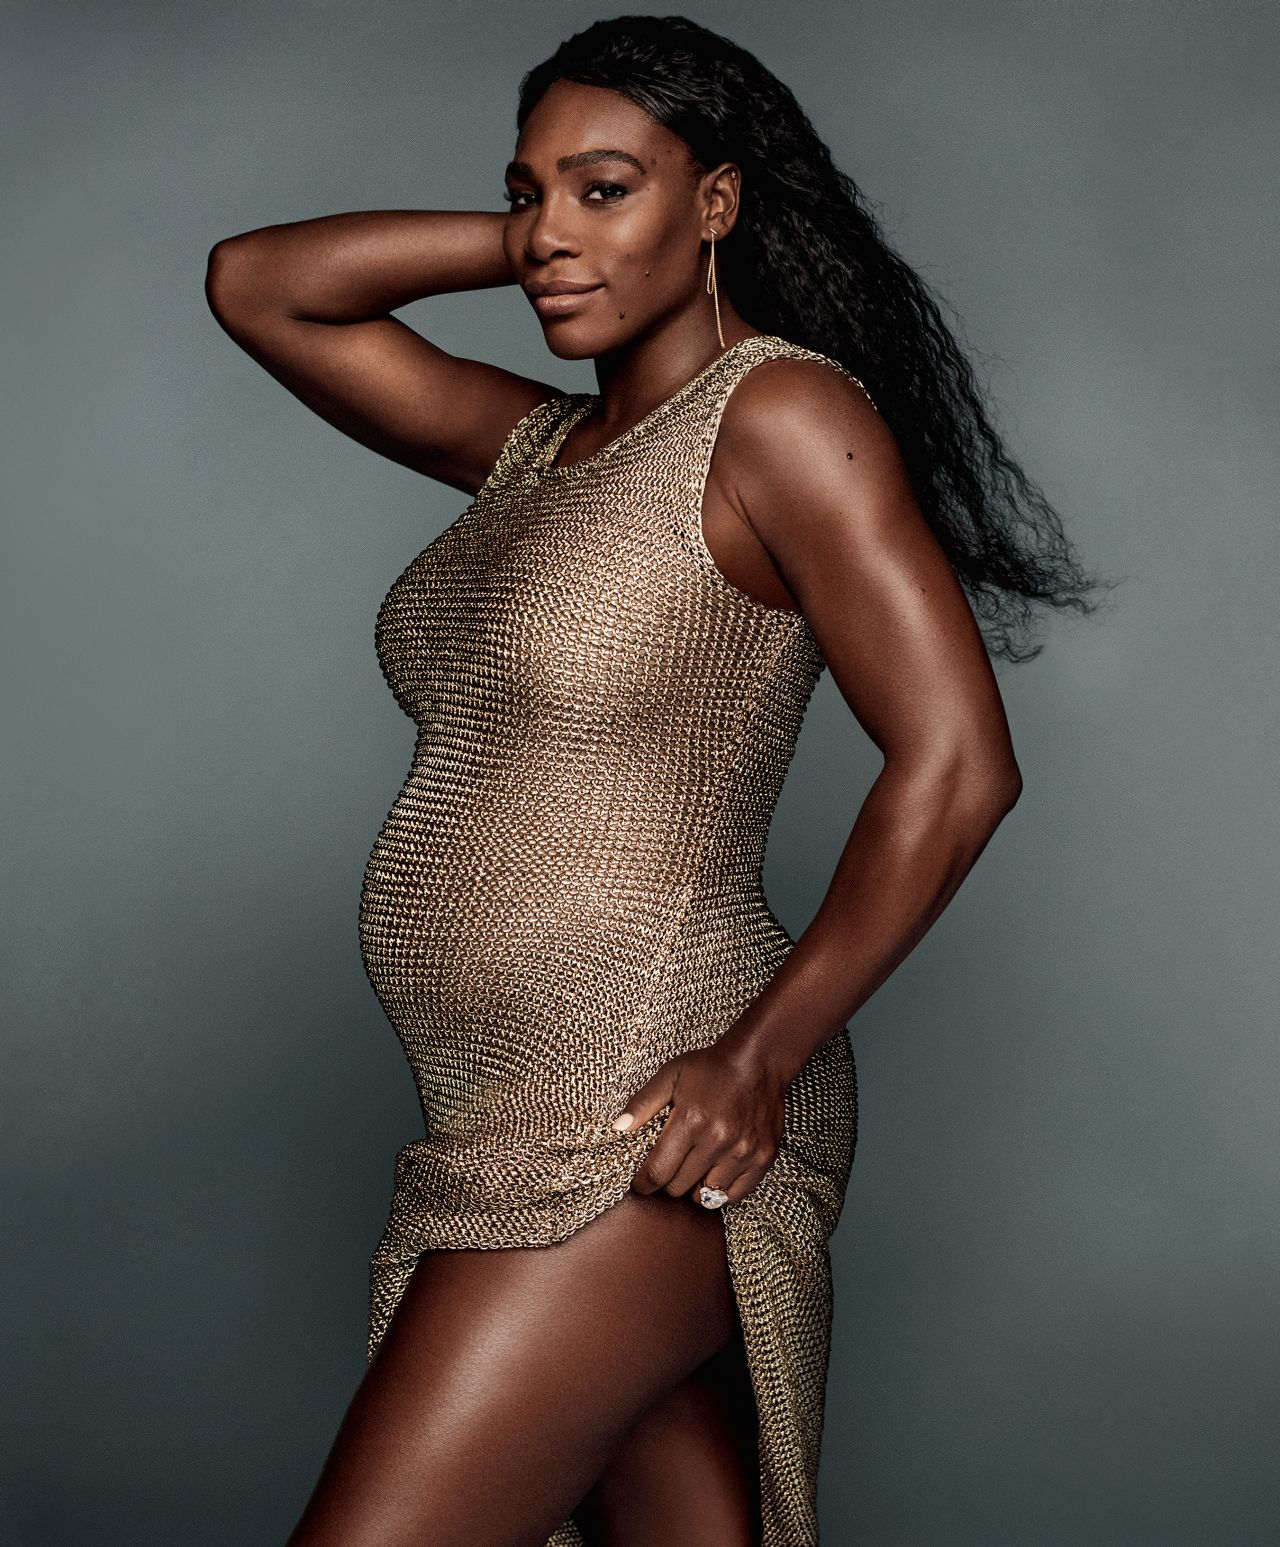 1280_serena_williams_vogueVO0917_Serena_001_EMBED.jpg